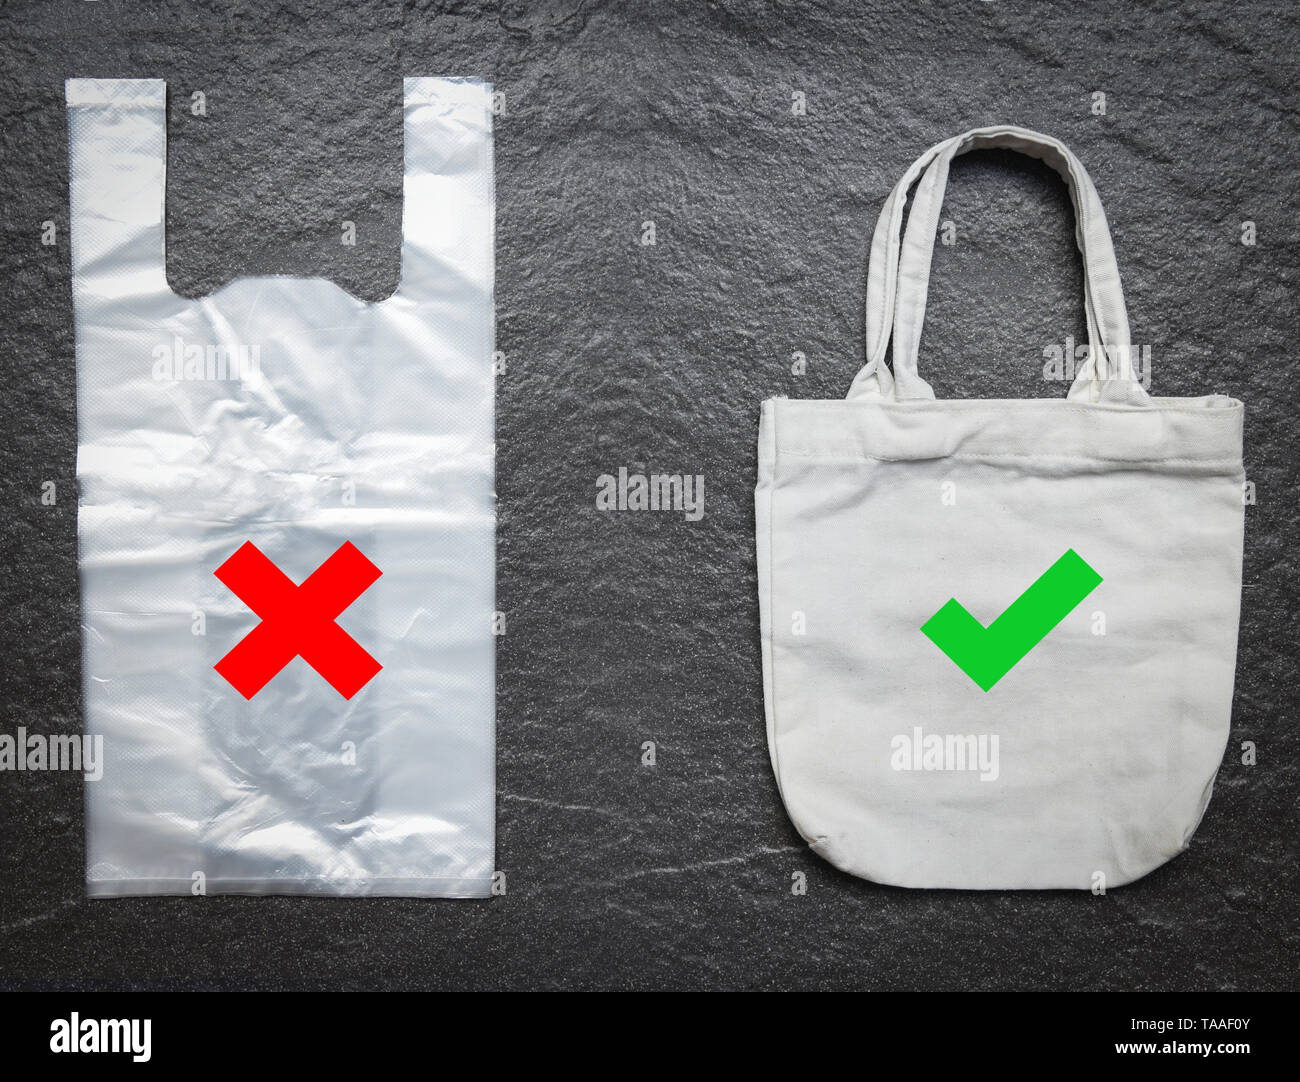 No plastic bag / Use tote bag canvas fabric cloth shopping replace say no to plastic bags on stone dark background - Pollution problem concept - Stock Image